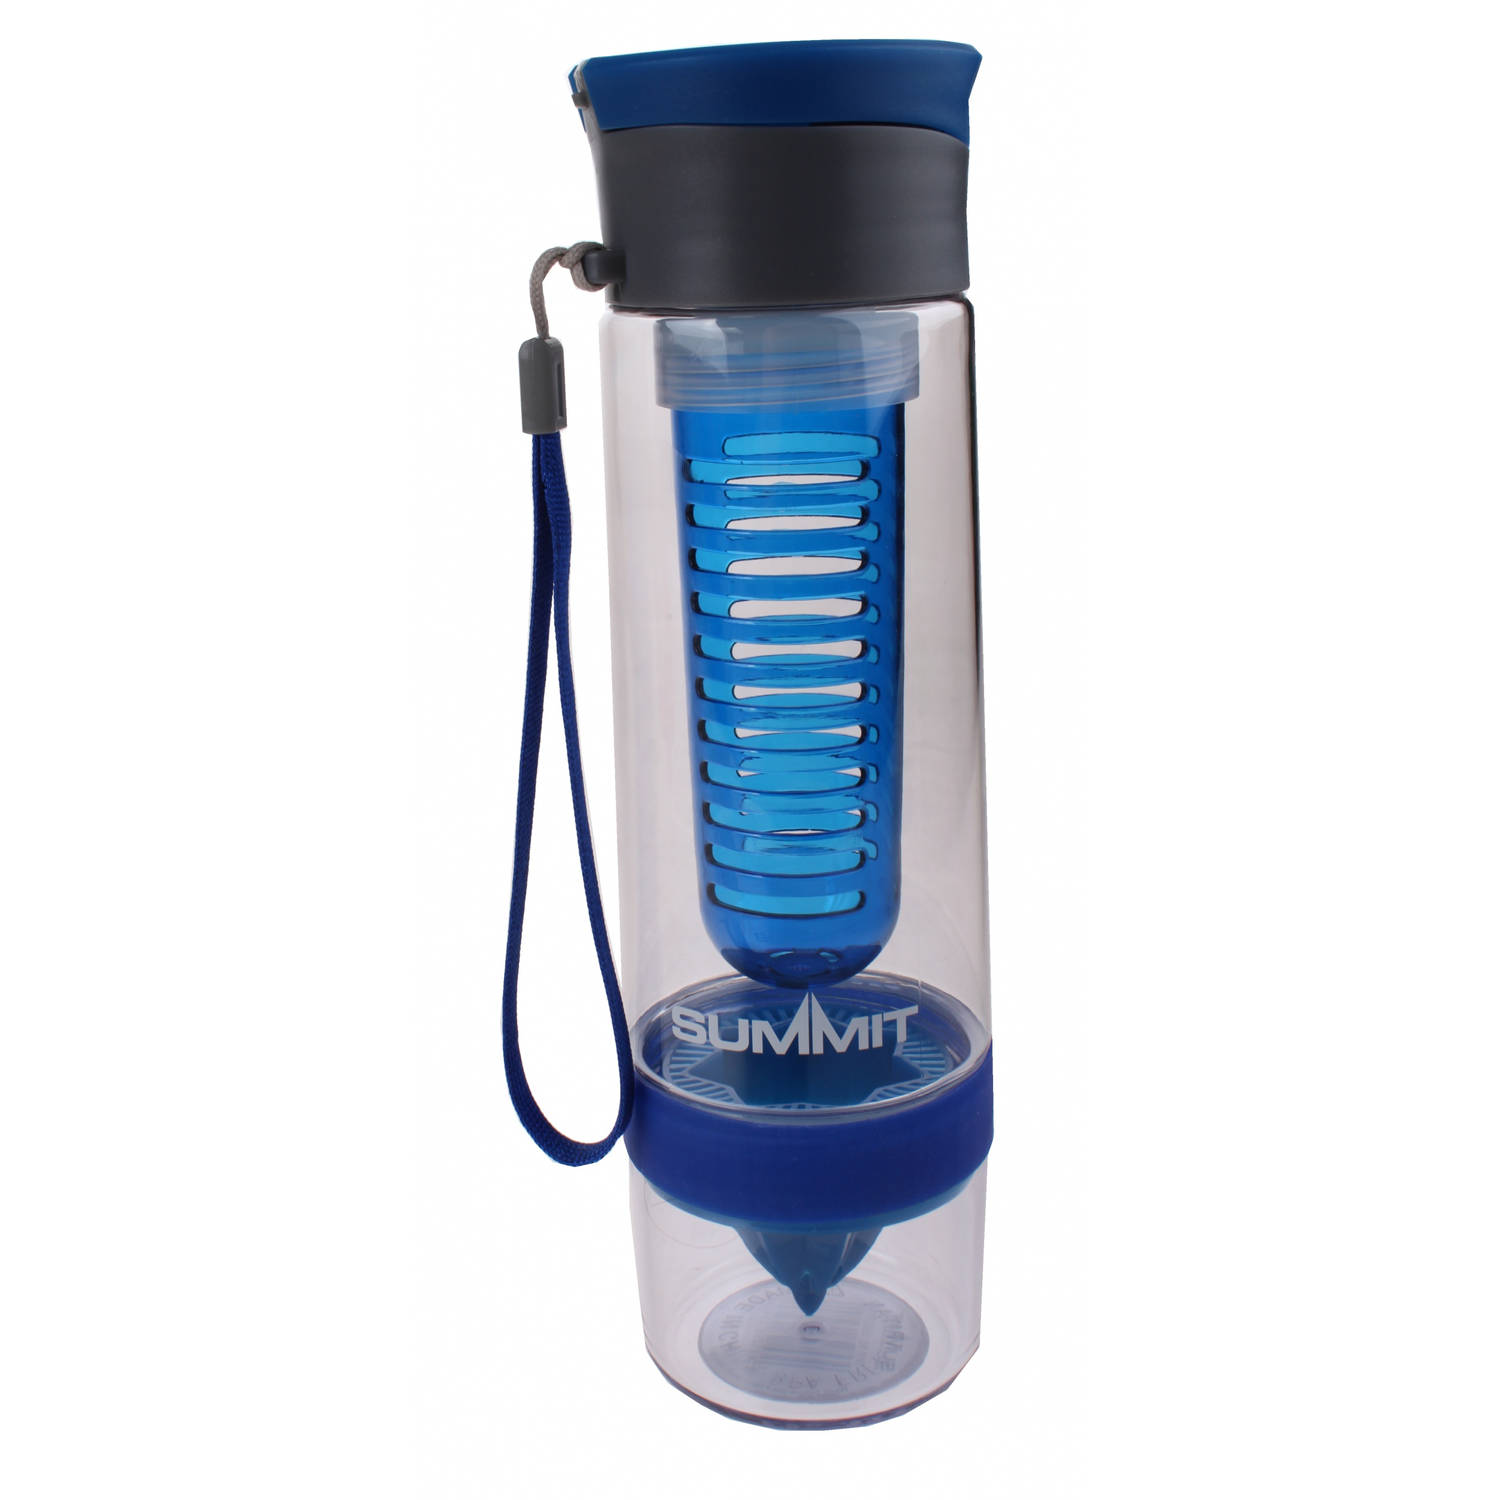 Summit drinkfles Dual Infuser 750 ml blauw